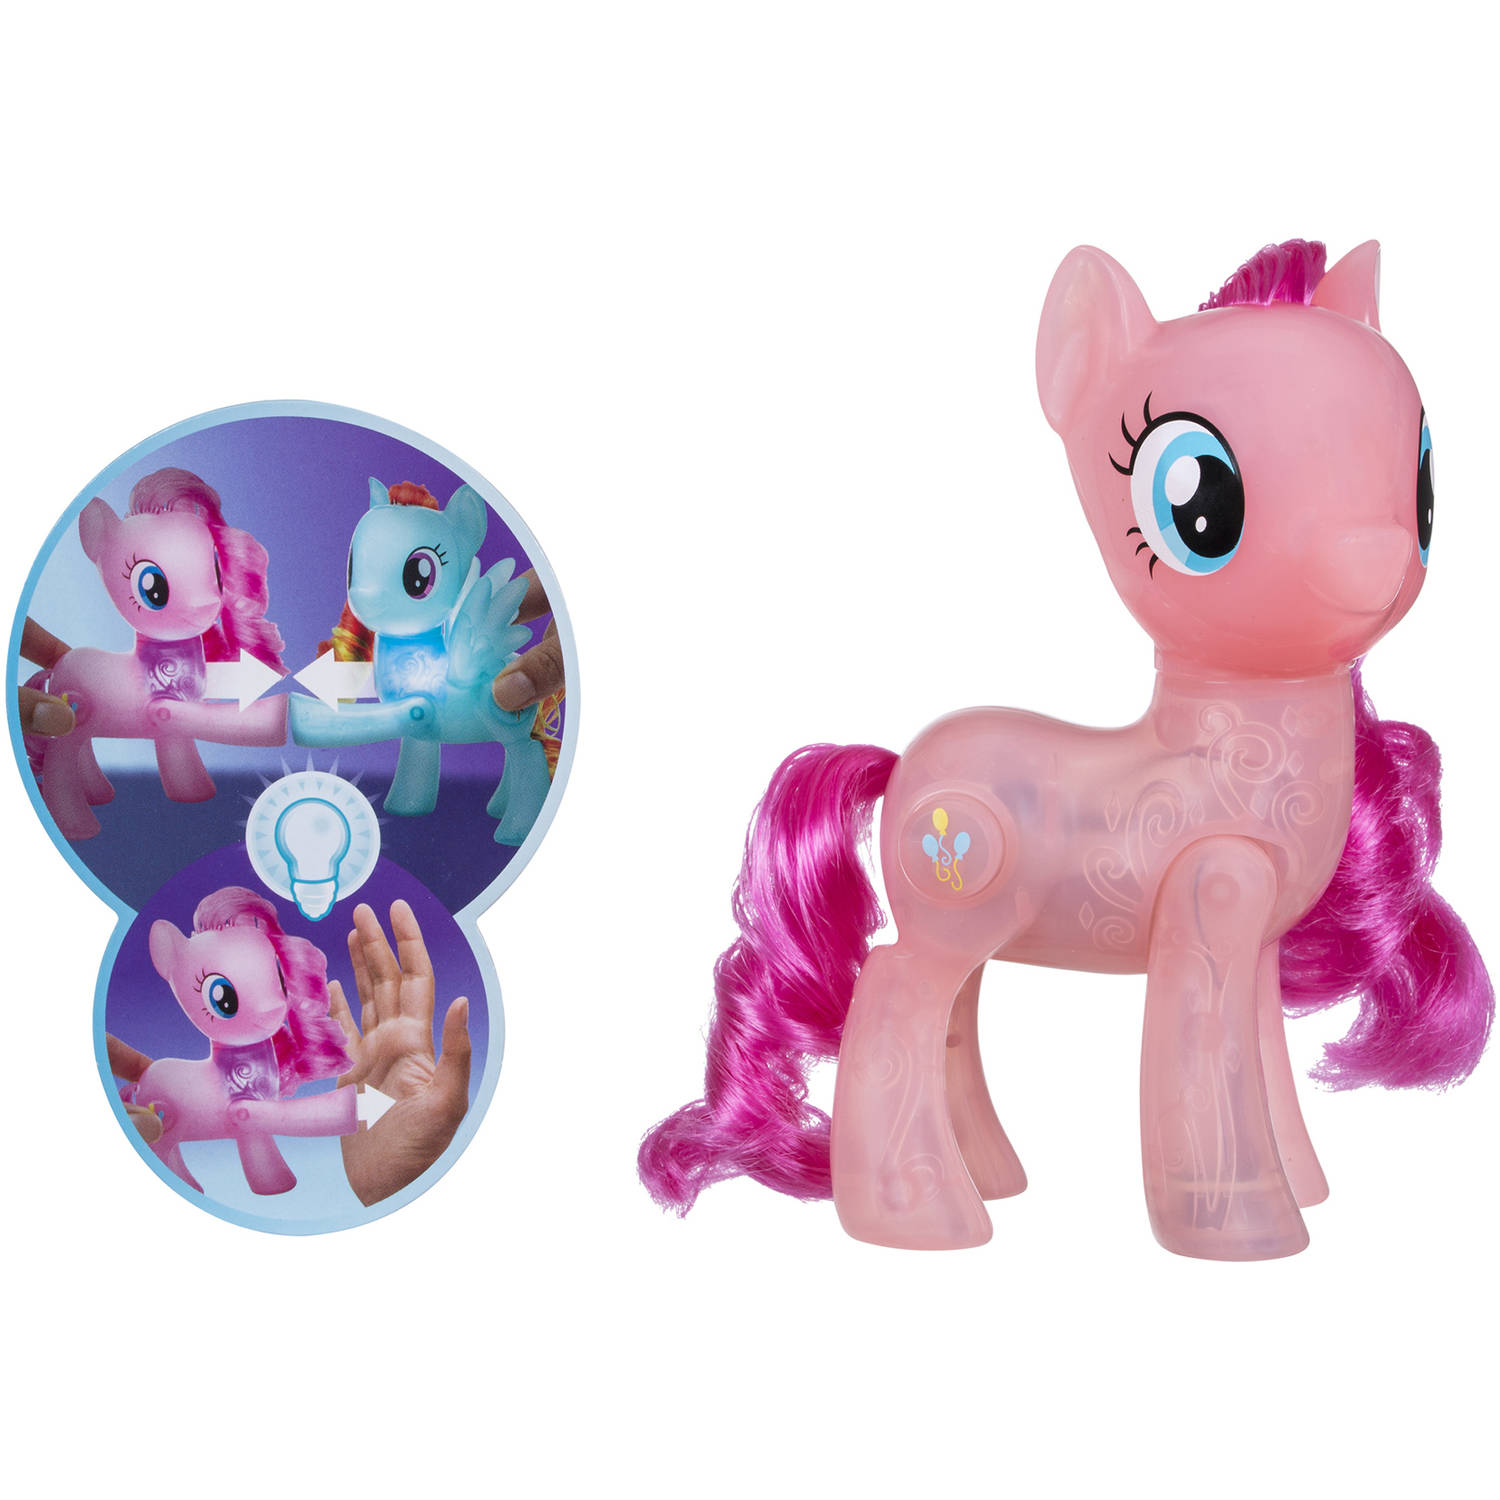 My Little Pony Shining Friends Pinkie Pie Figure by